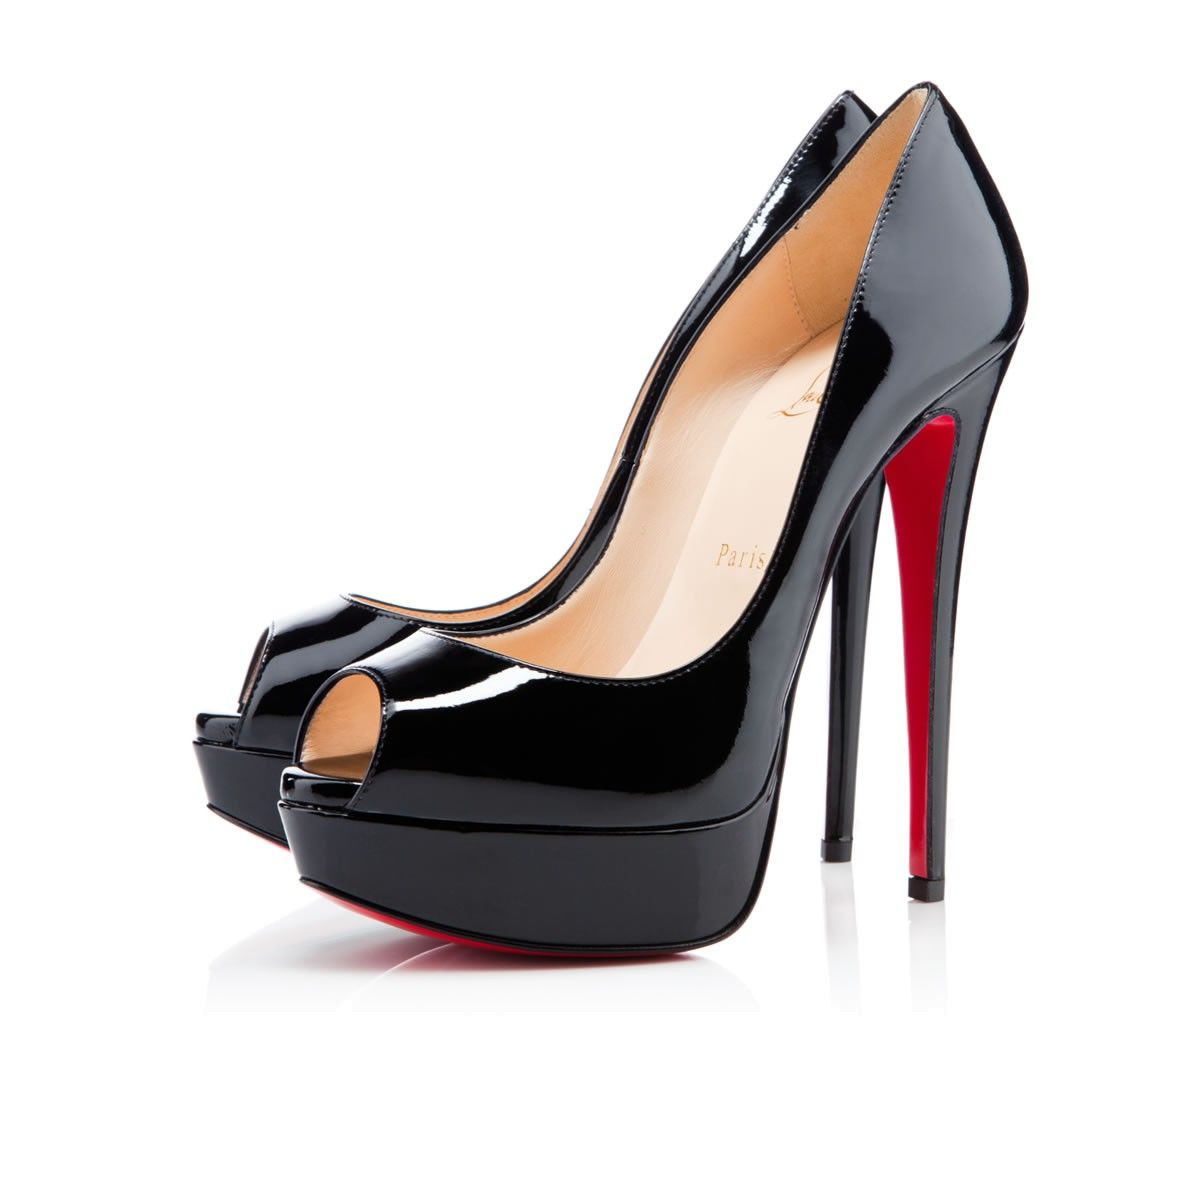 Lady Peep 150 Black Patent Leather - Women Shoes - Christian Louboutin